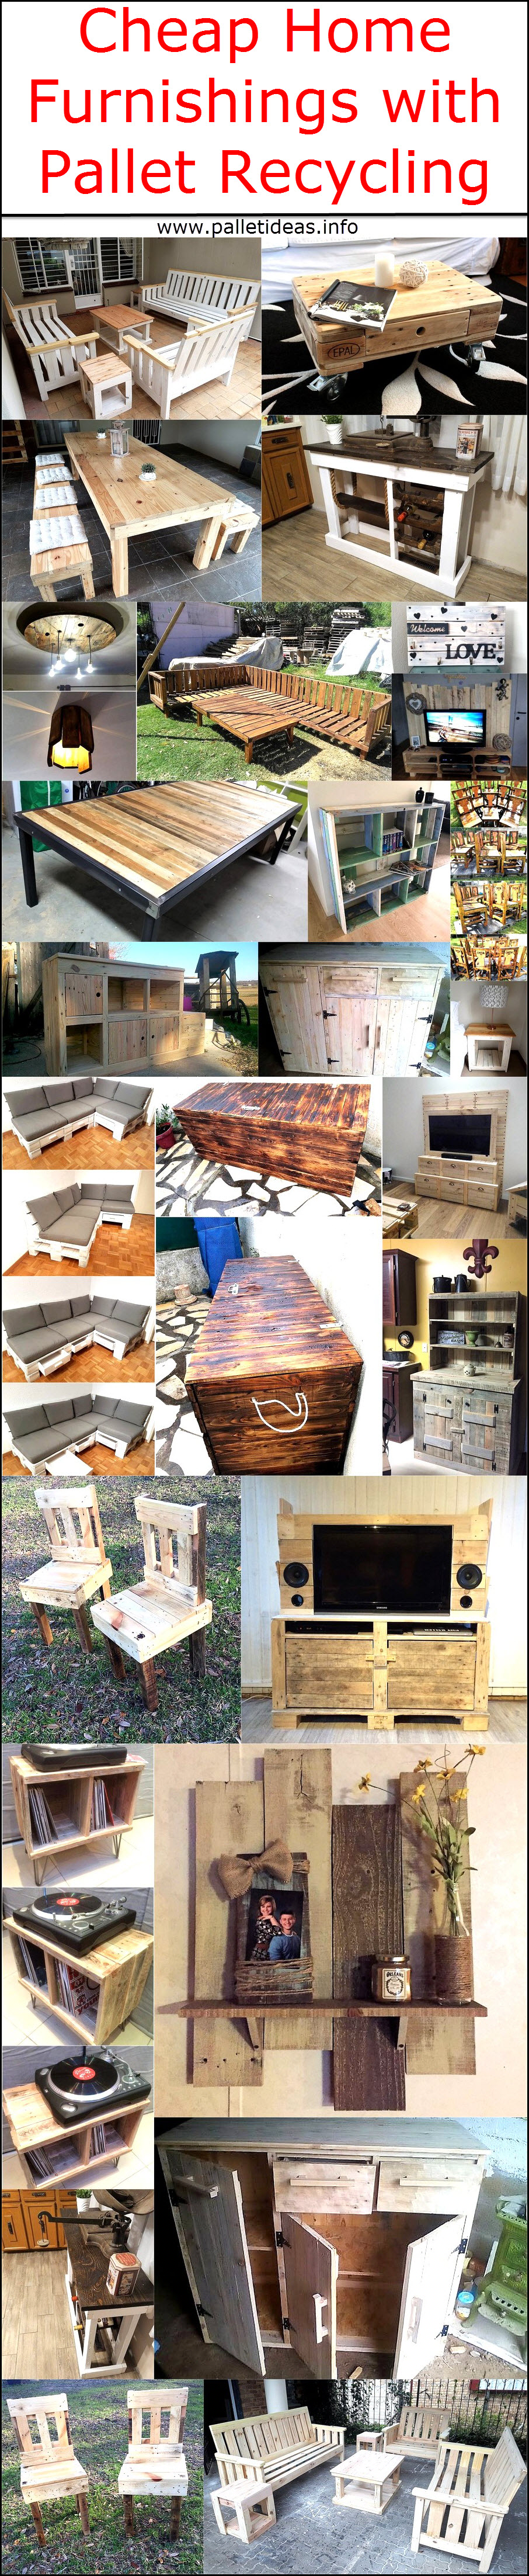 Cheap Home Furnishings with Pallet Recycling